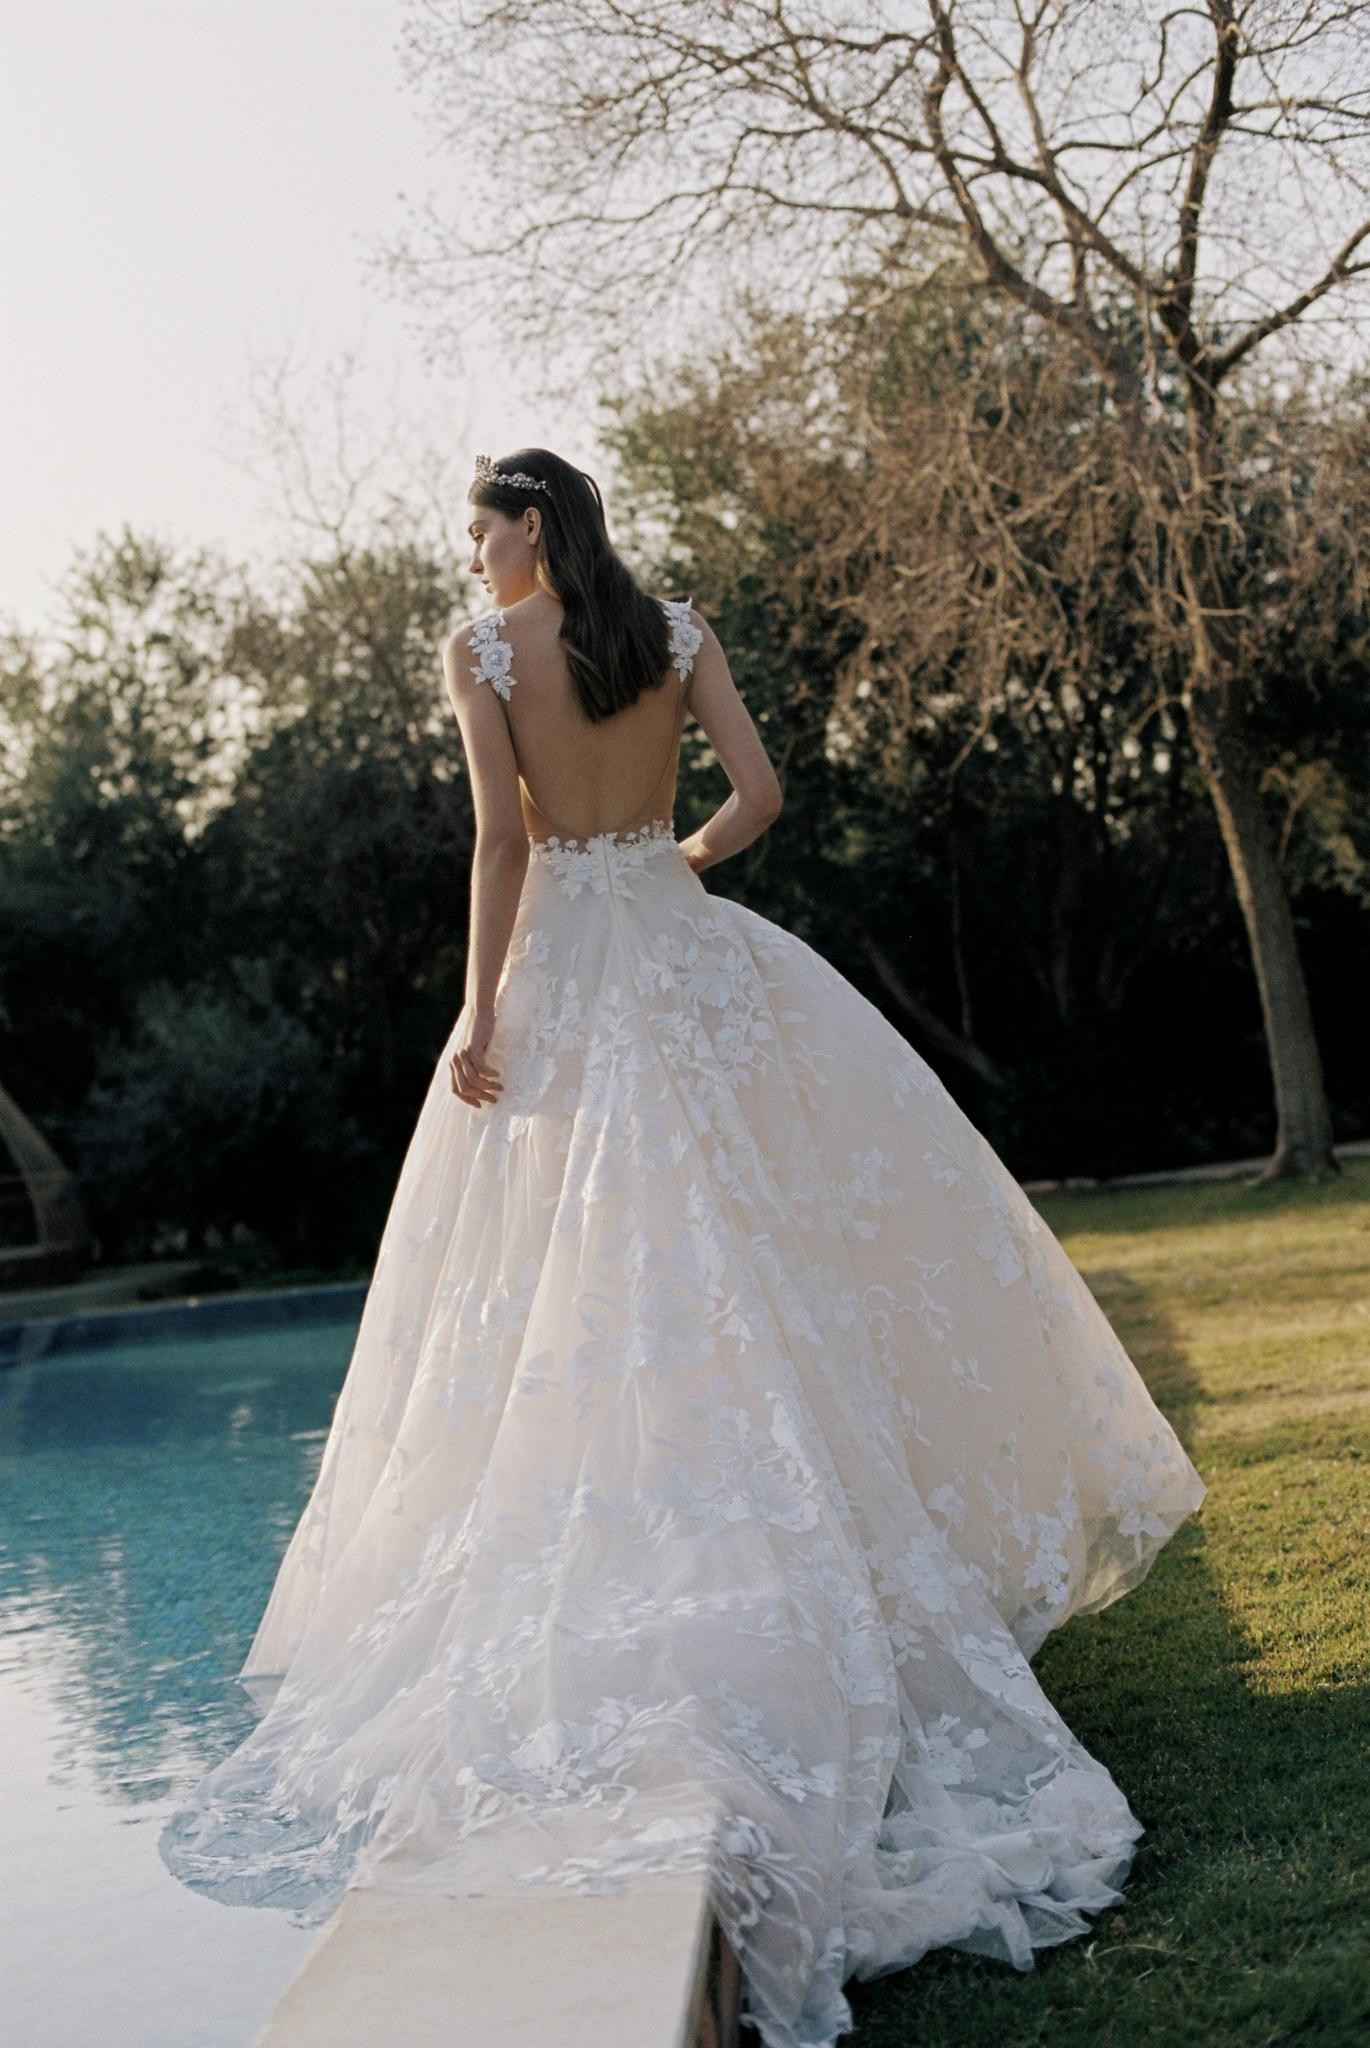 The Most Iconic Princess Wedding Dresses Galia Lahav